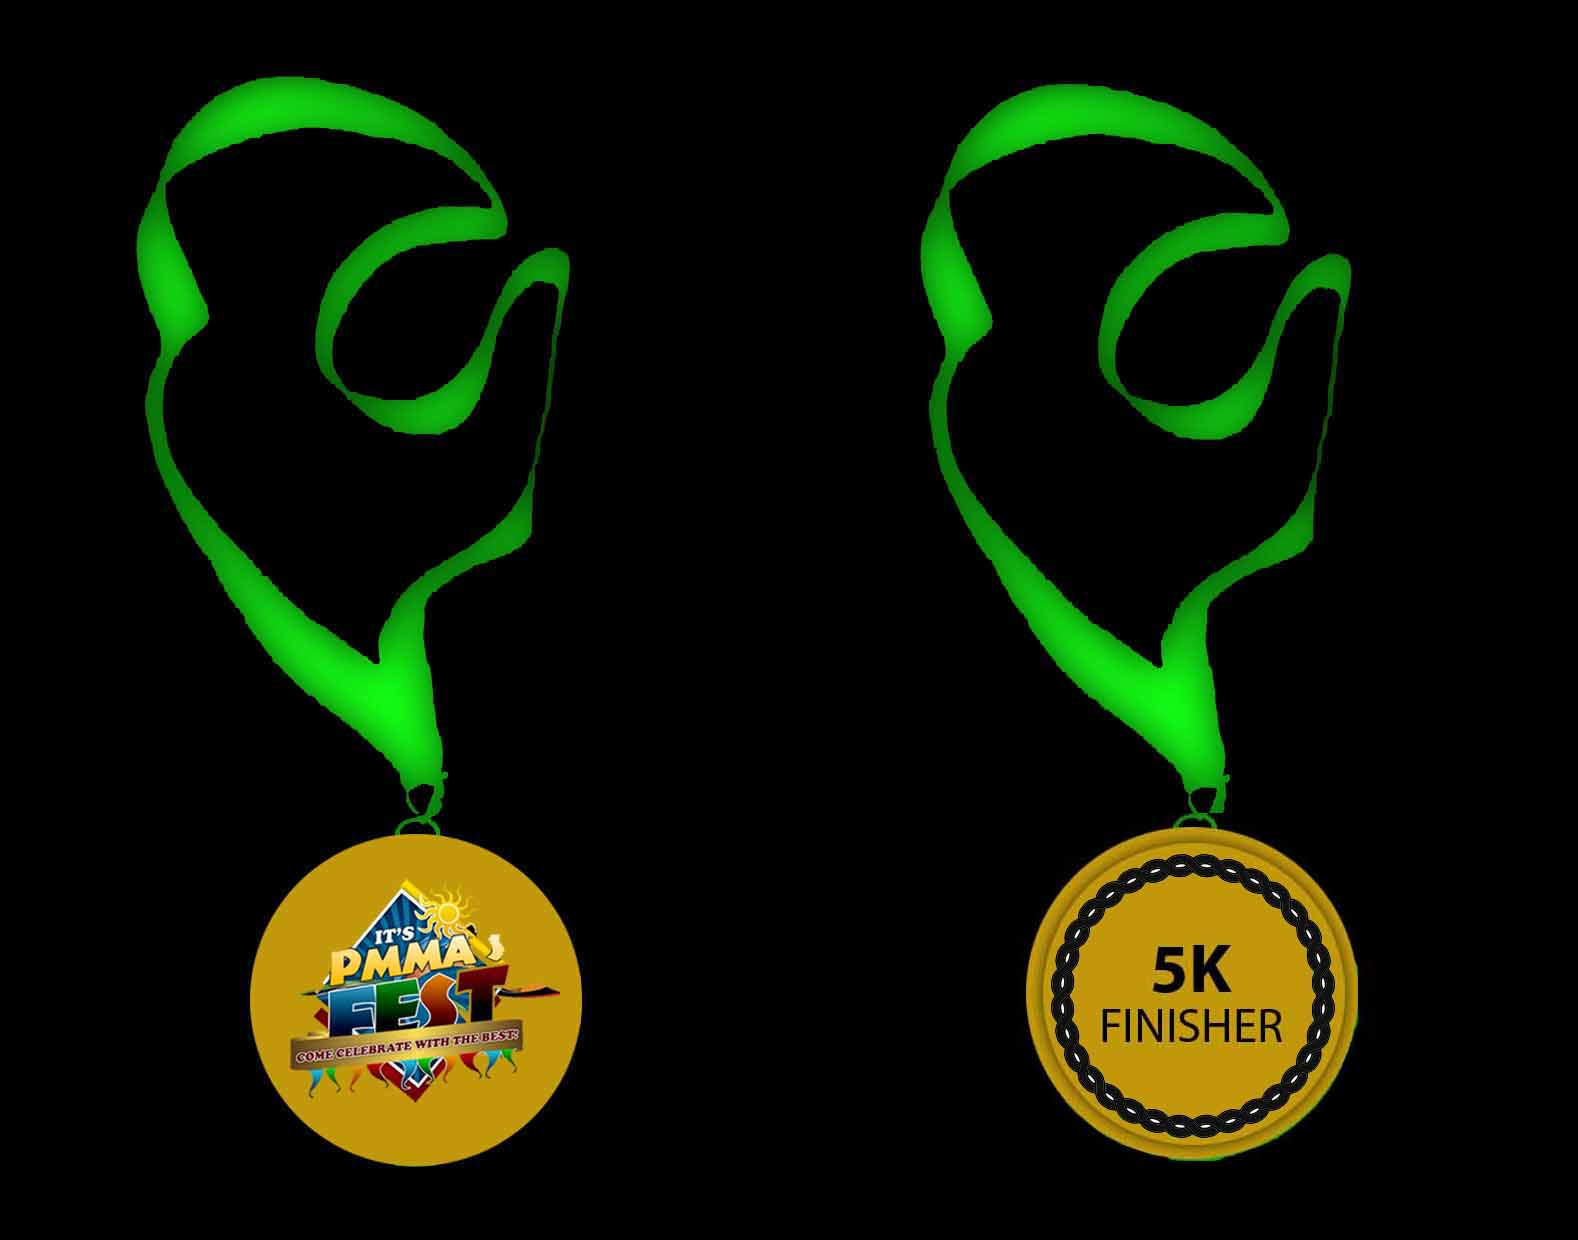 takbo-para-sa-marino-5k-fun-run-2013-medal-design